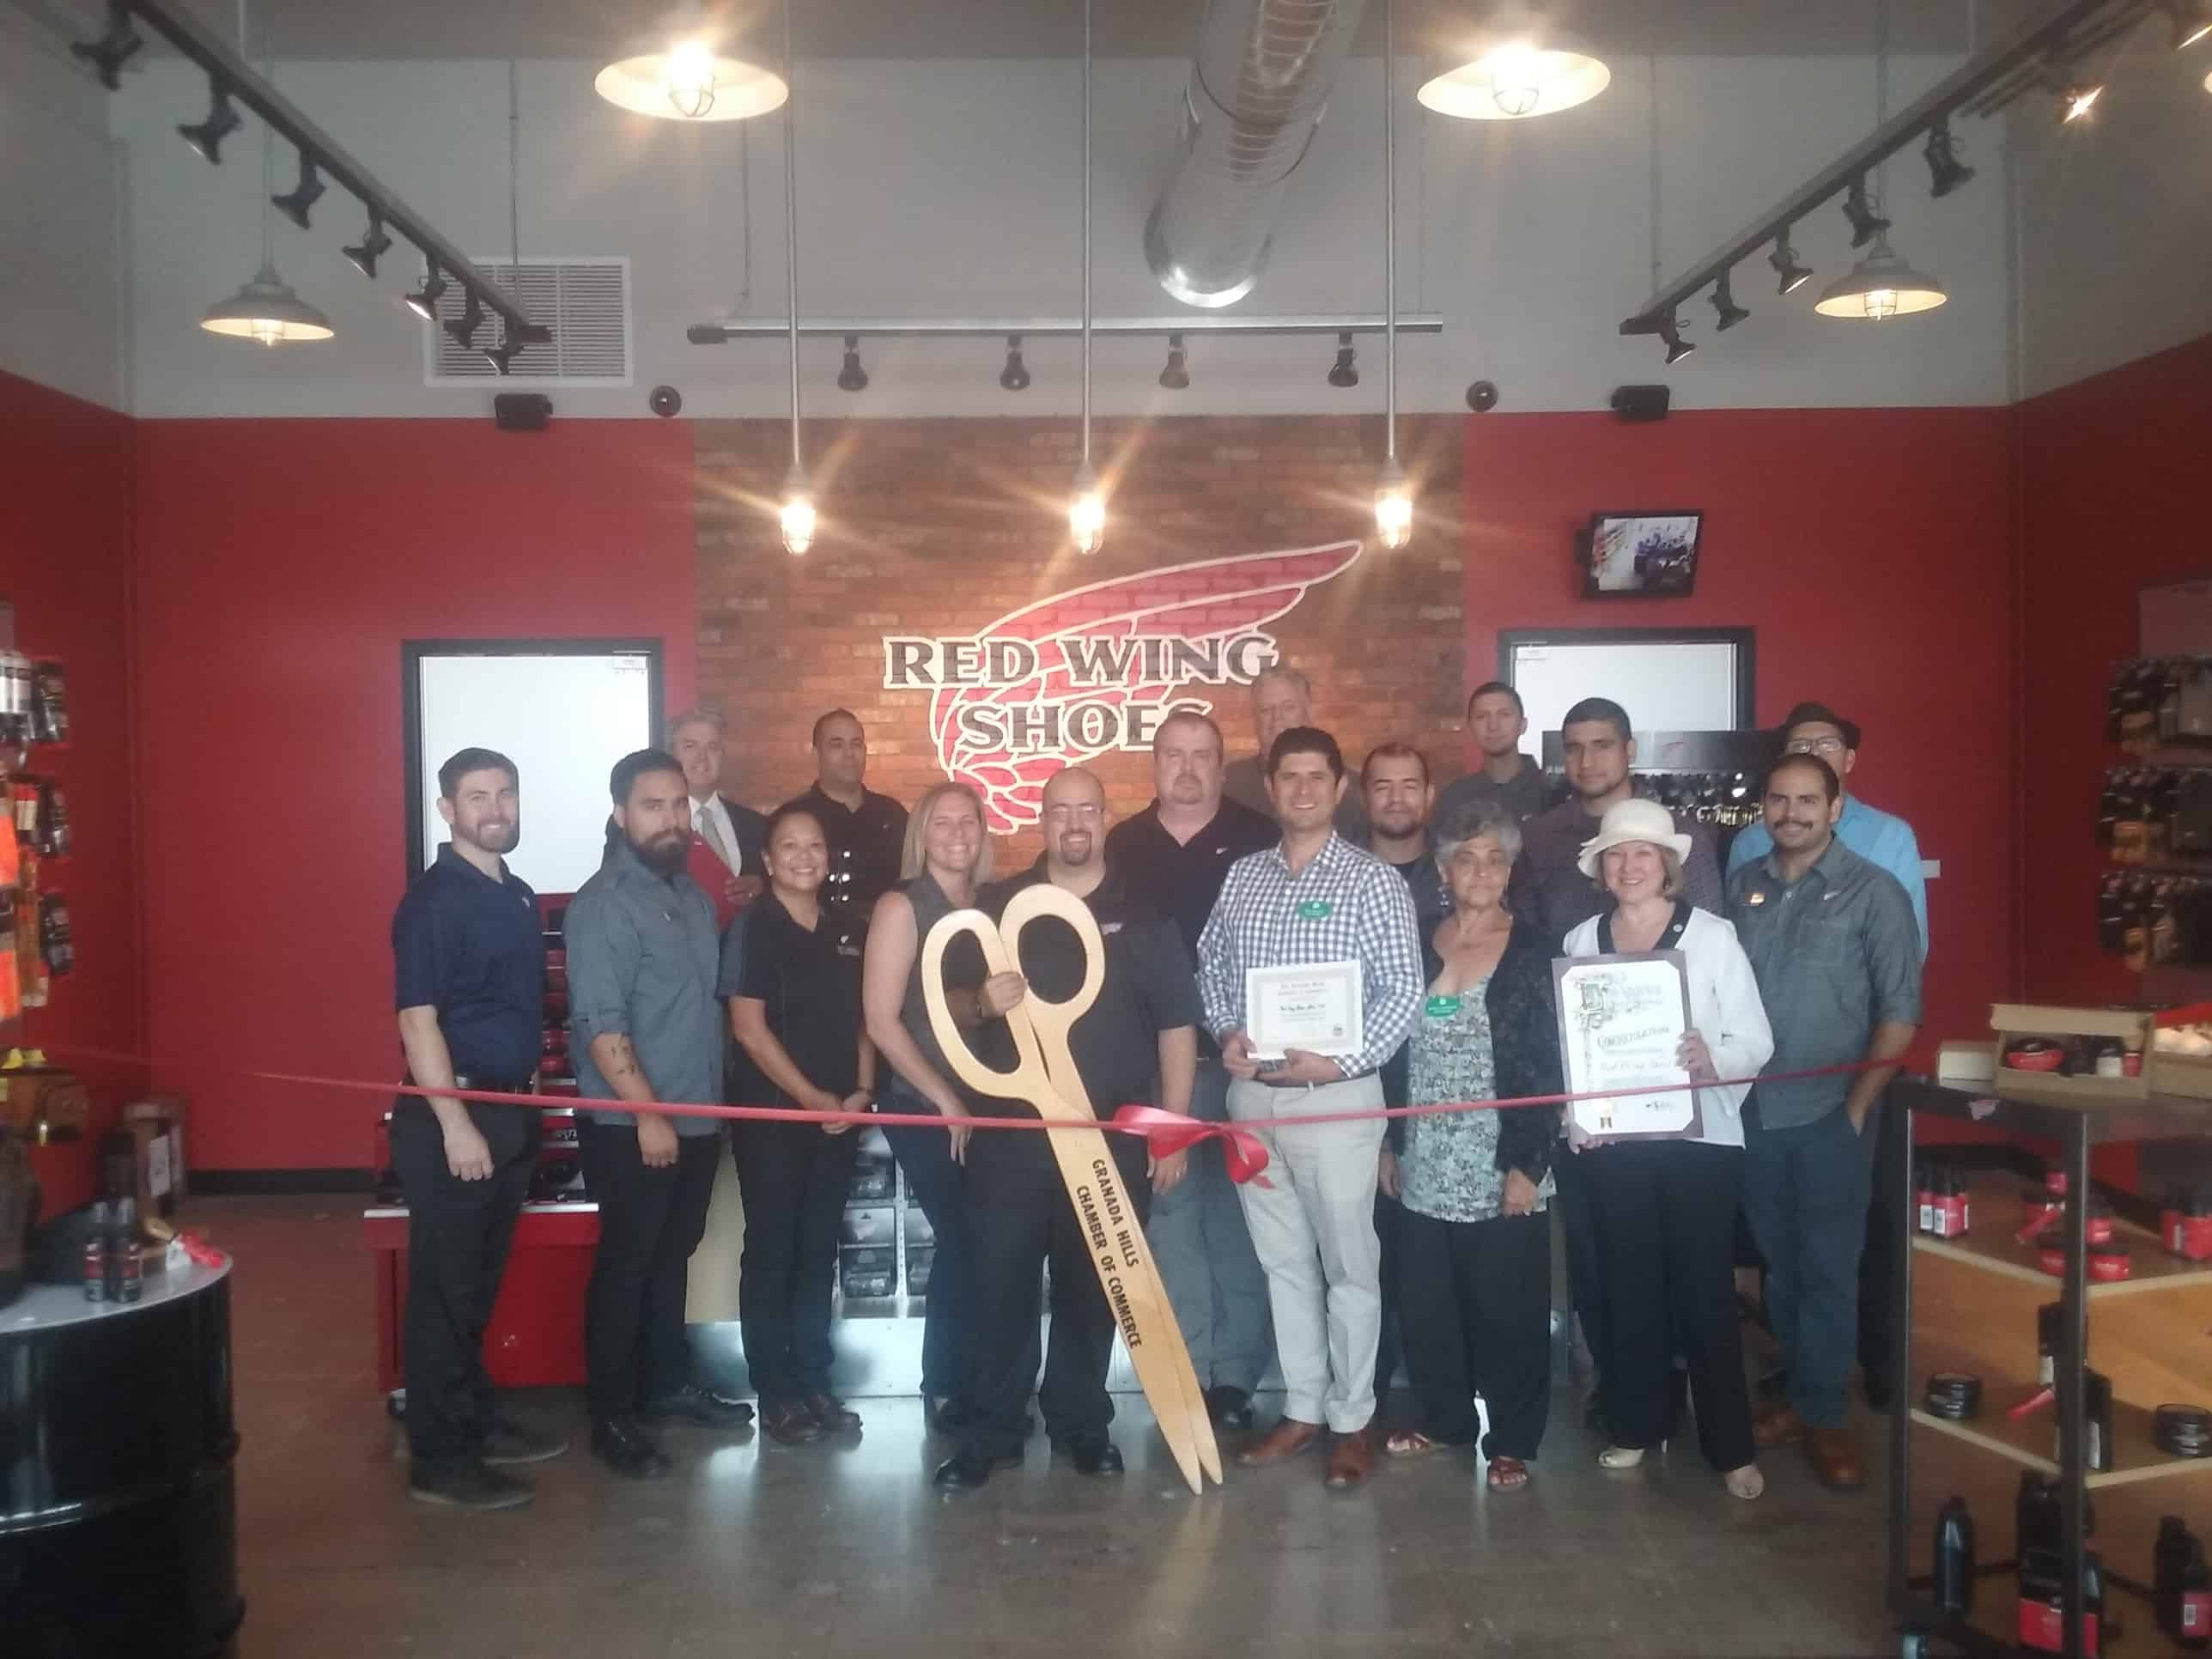 Red Wing Shoe Ribbon Cutting